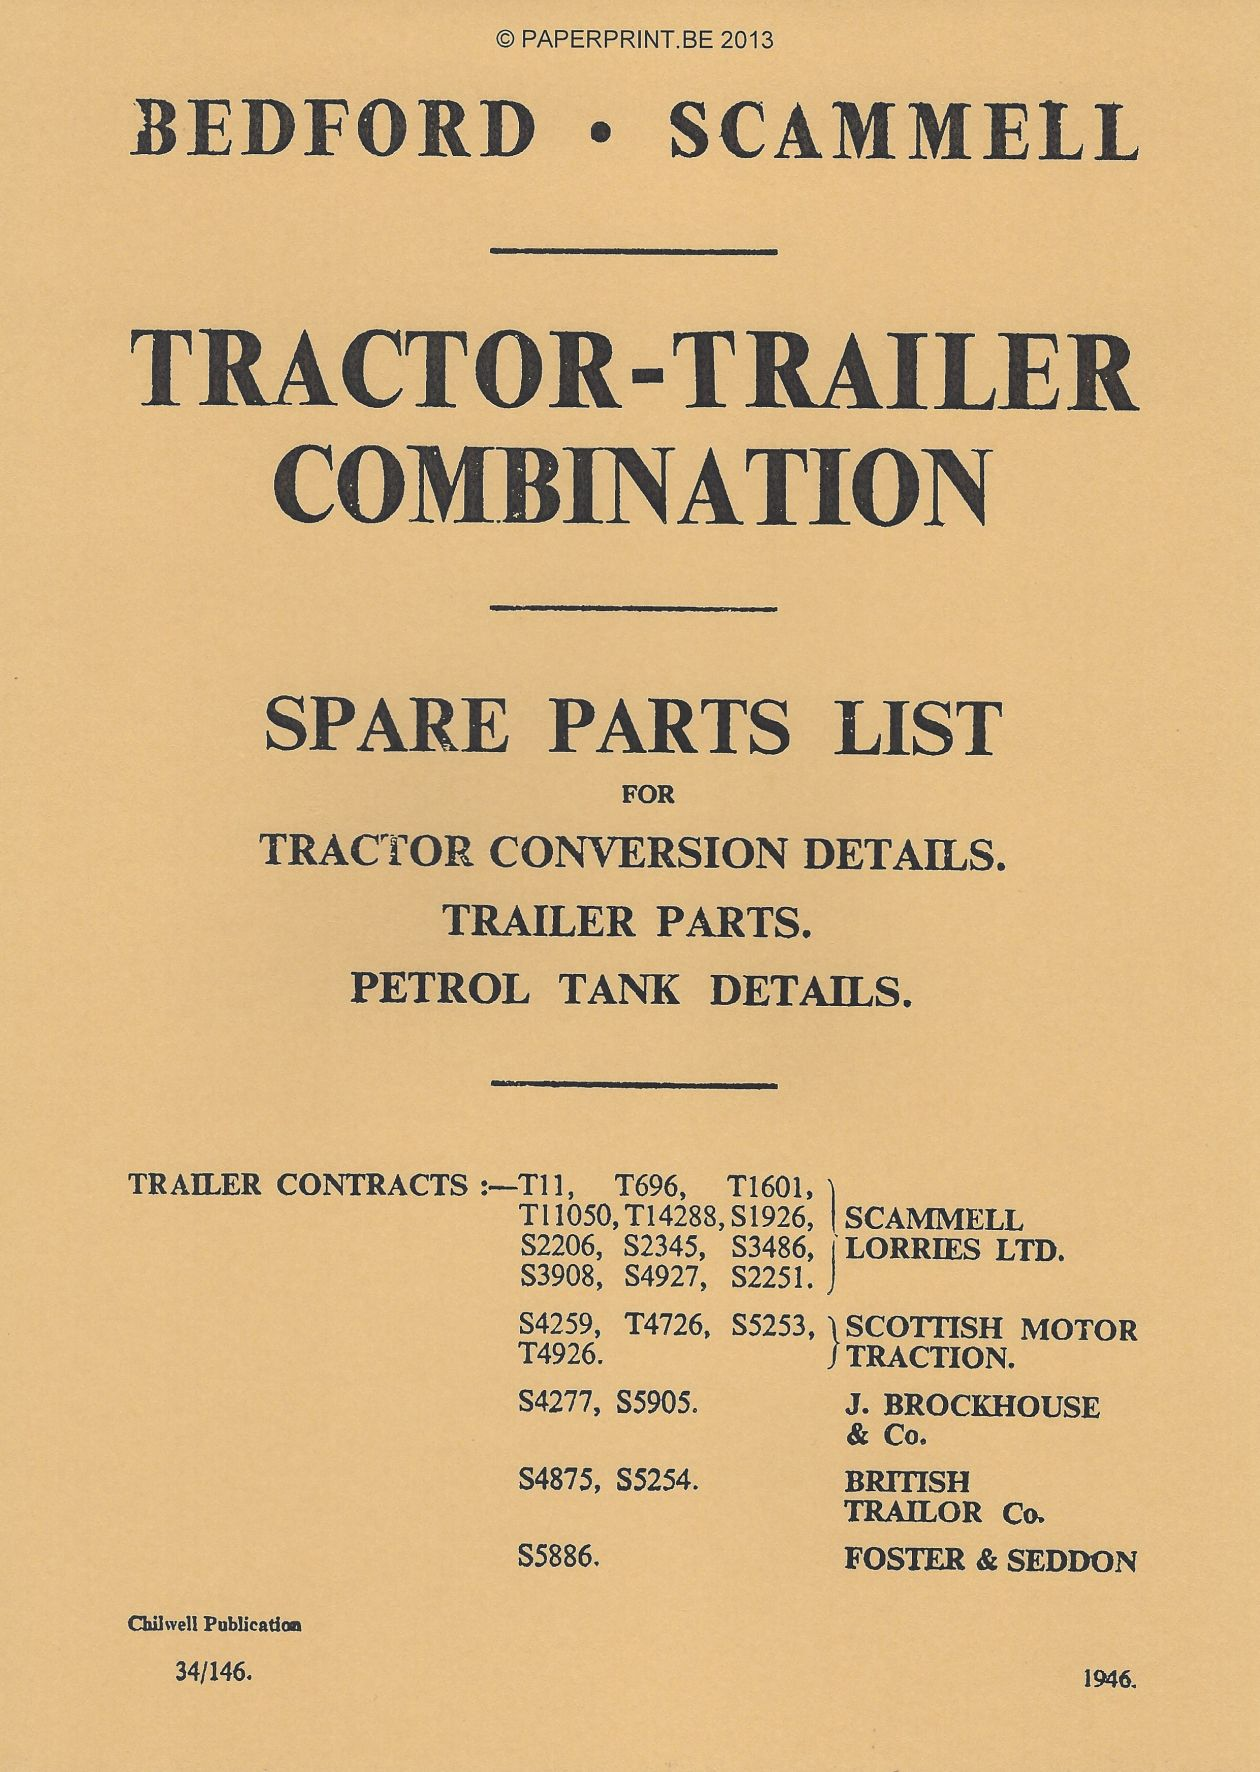 BEDFORD-SCAMMELL TRACTOR-TRAILER COMBINATION SPARE PARTS LIST